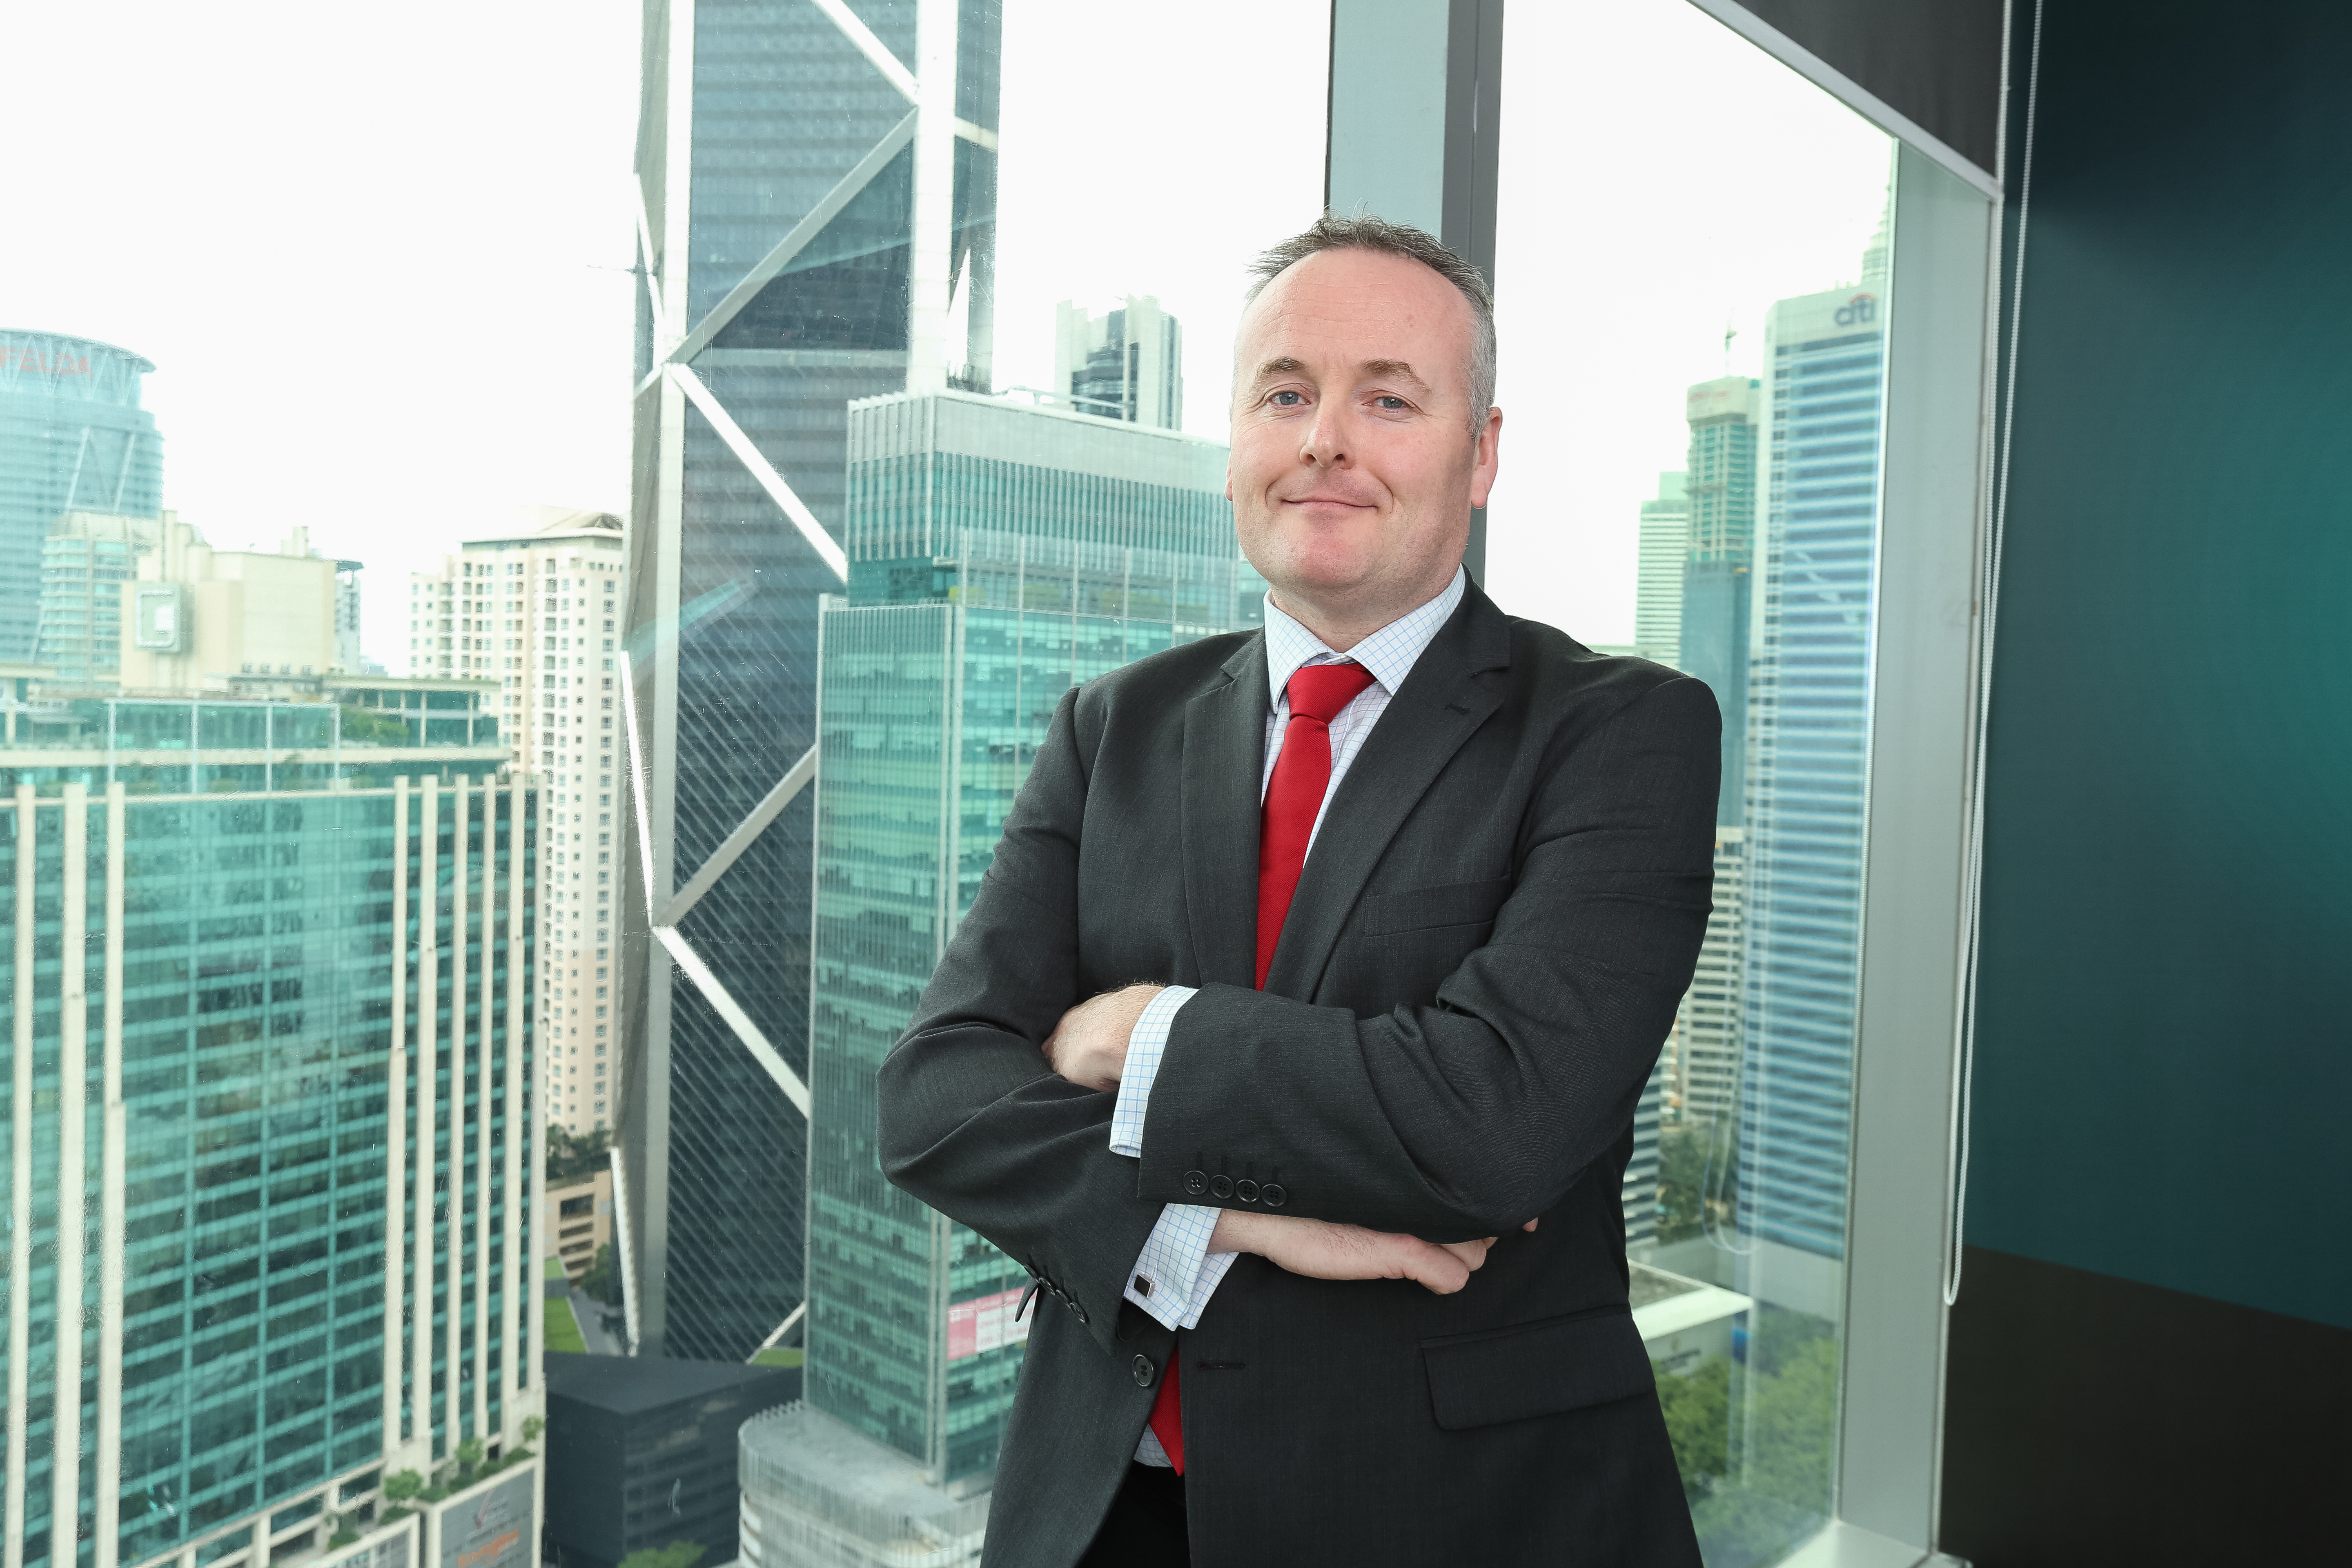 Standout in Marketing Job Opportunities with Increase of 45% in Q3 2021 from 2020: Michael Page Malaysia